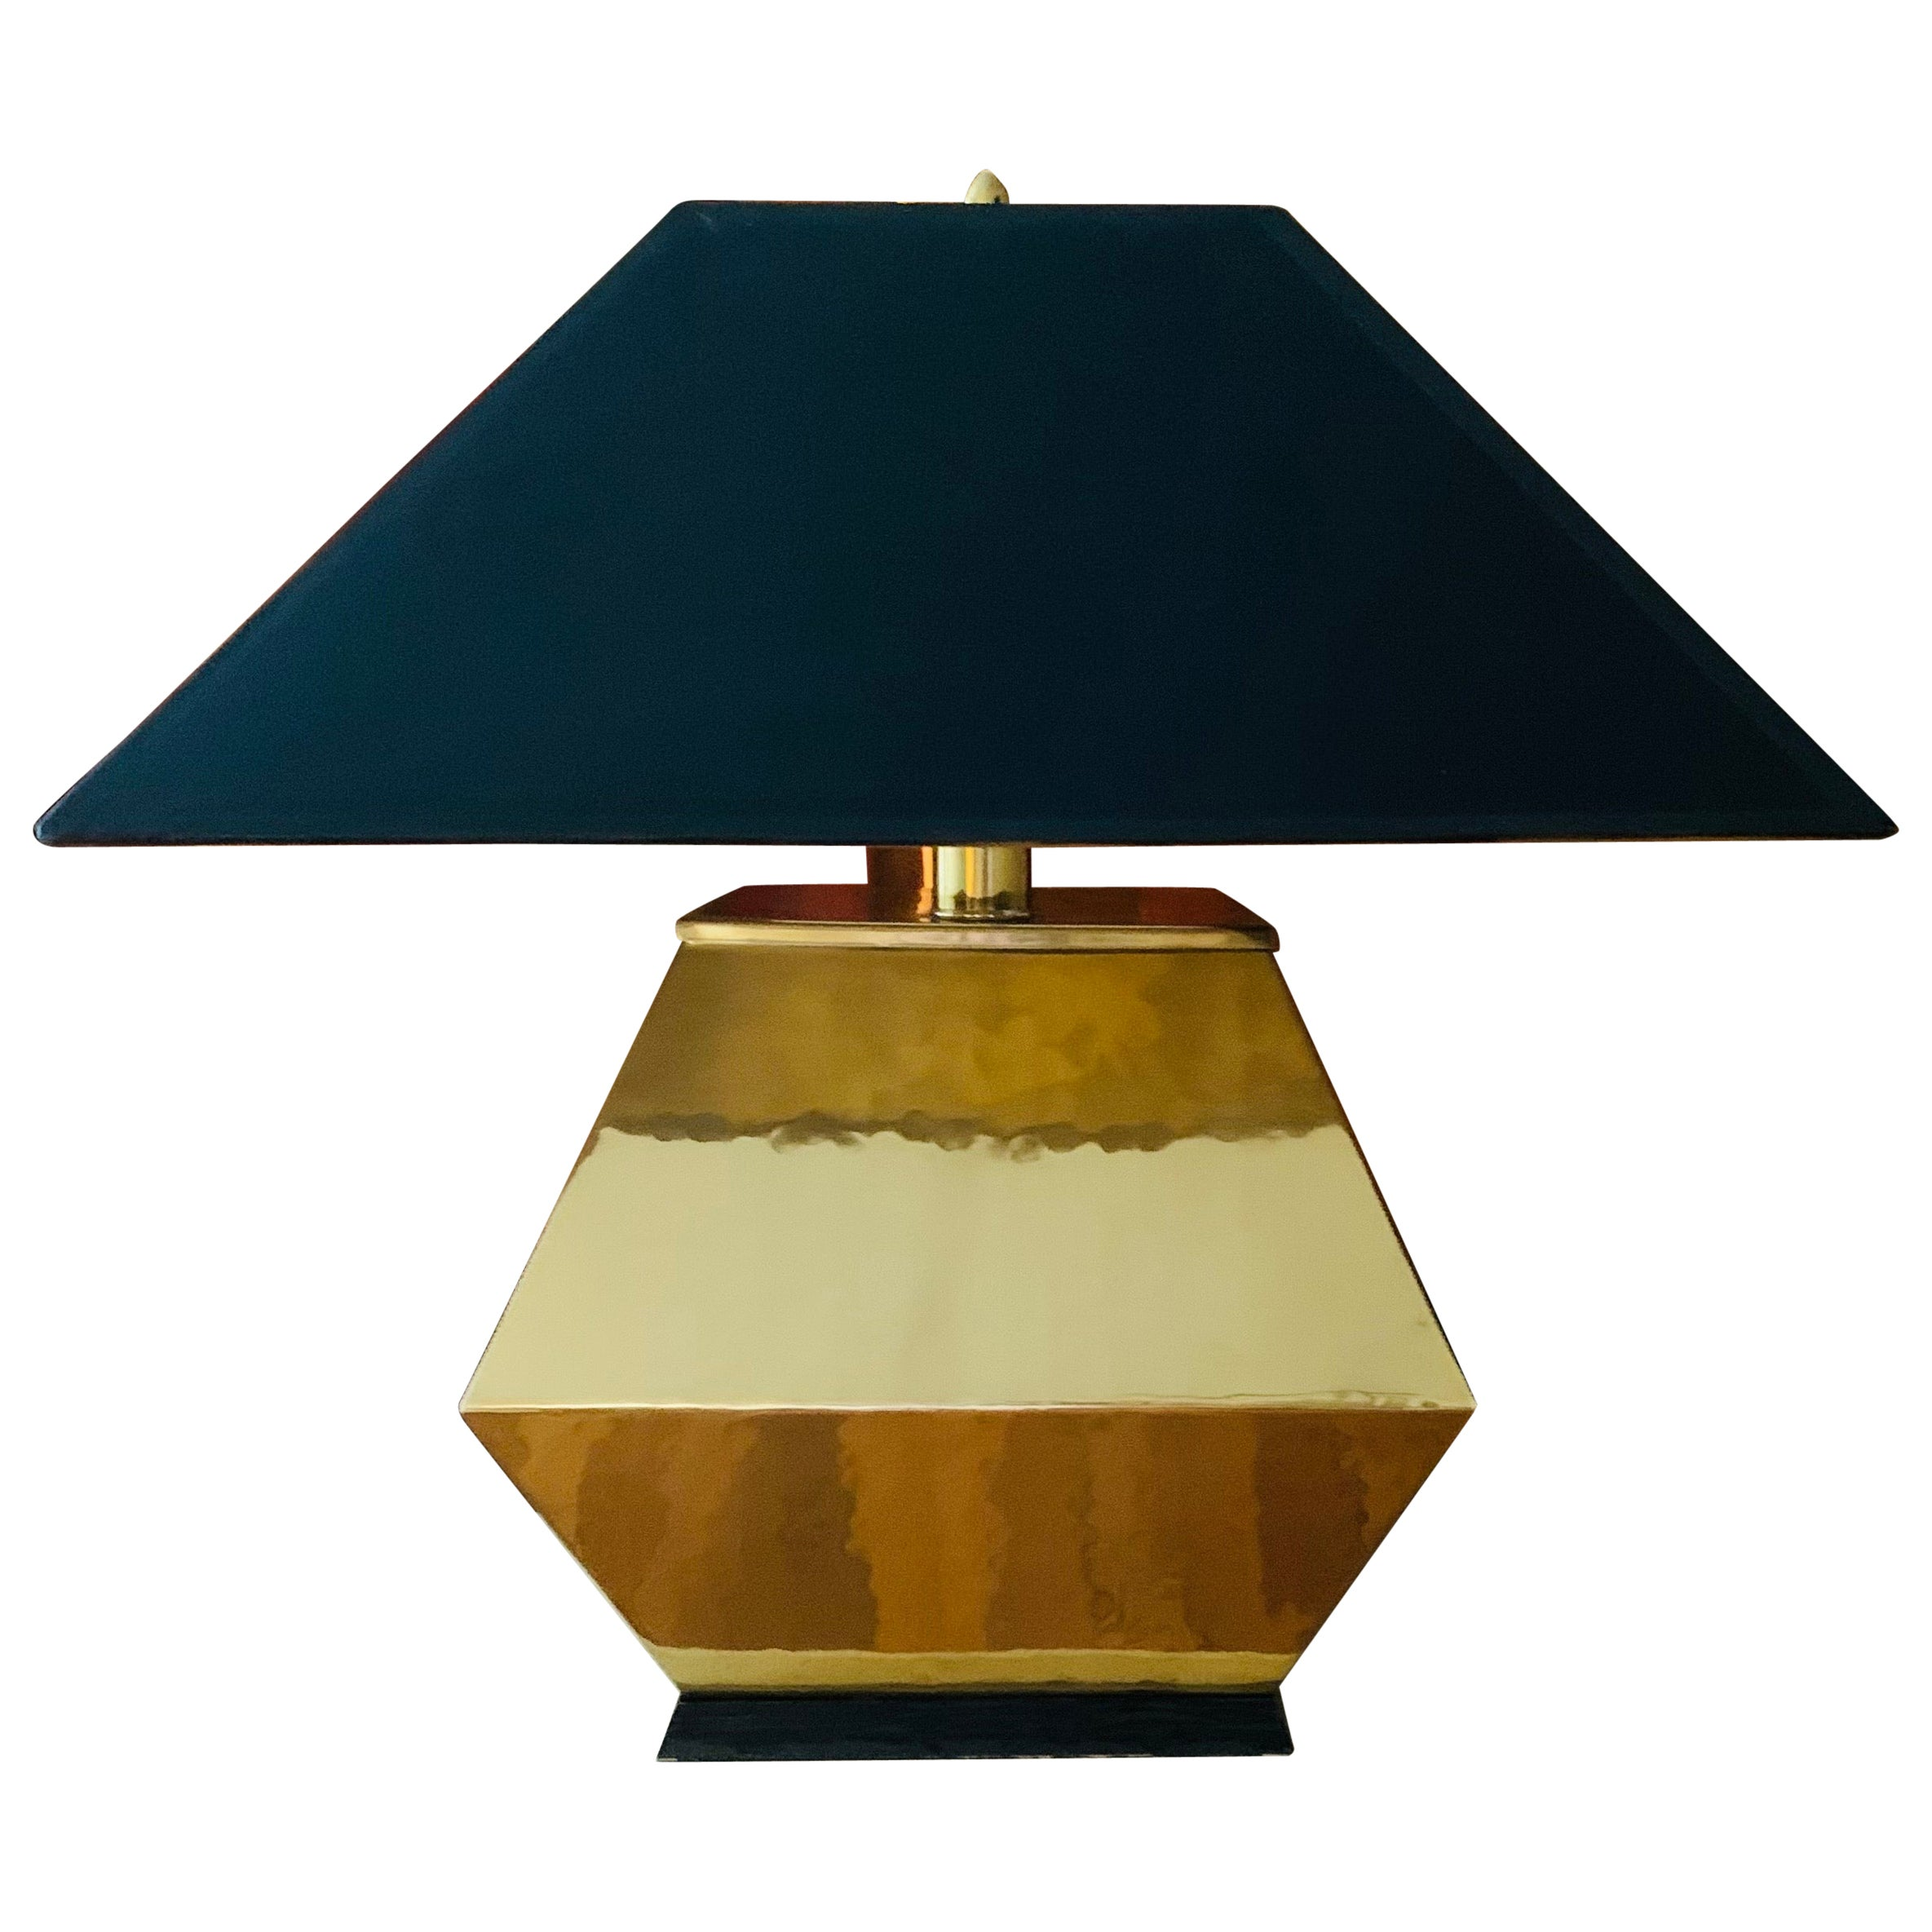 Large Square Faceted Brass Table Lamp with Black Shade